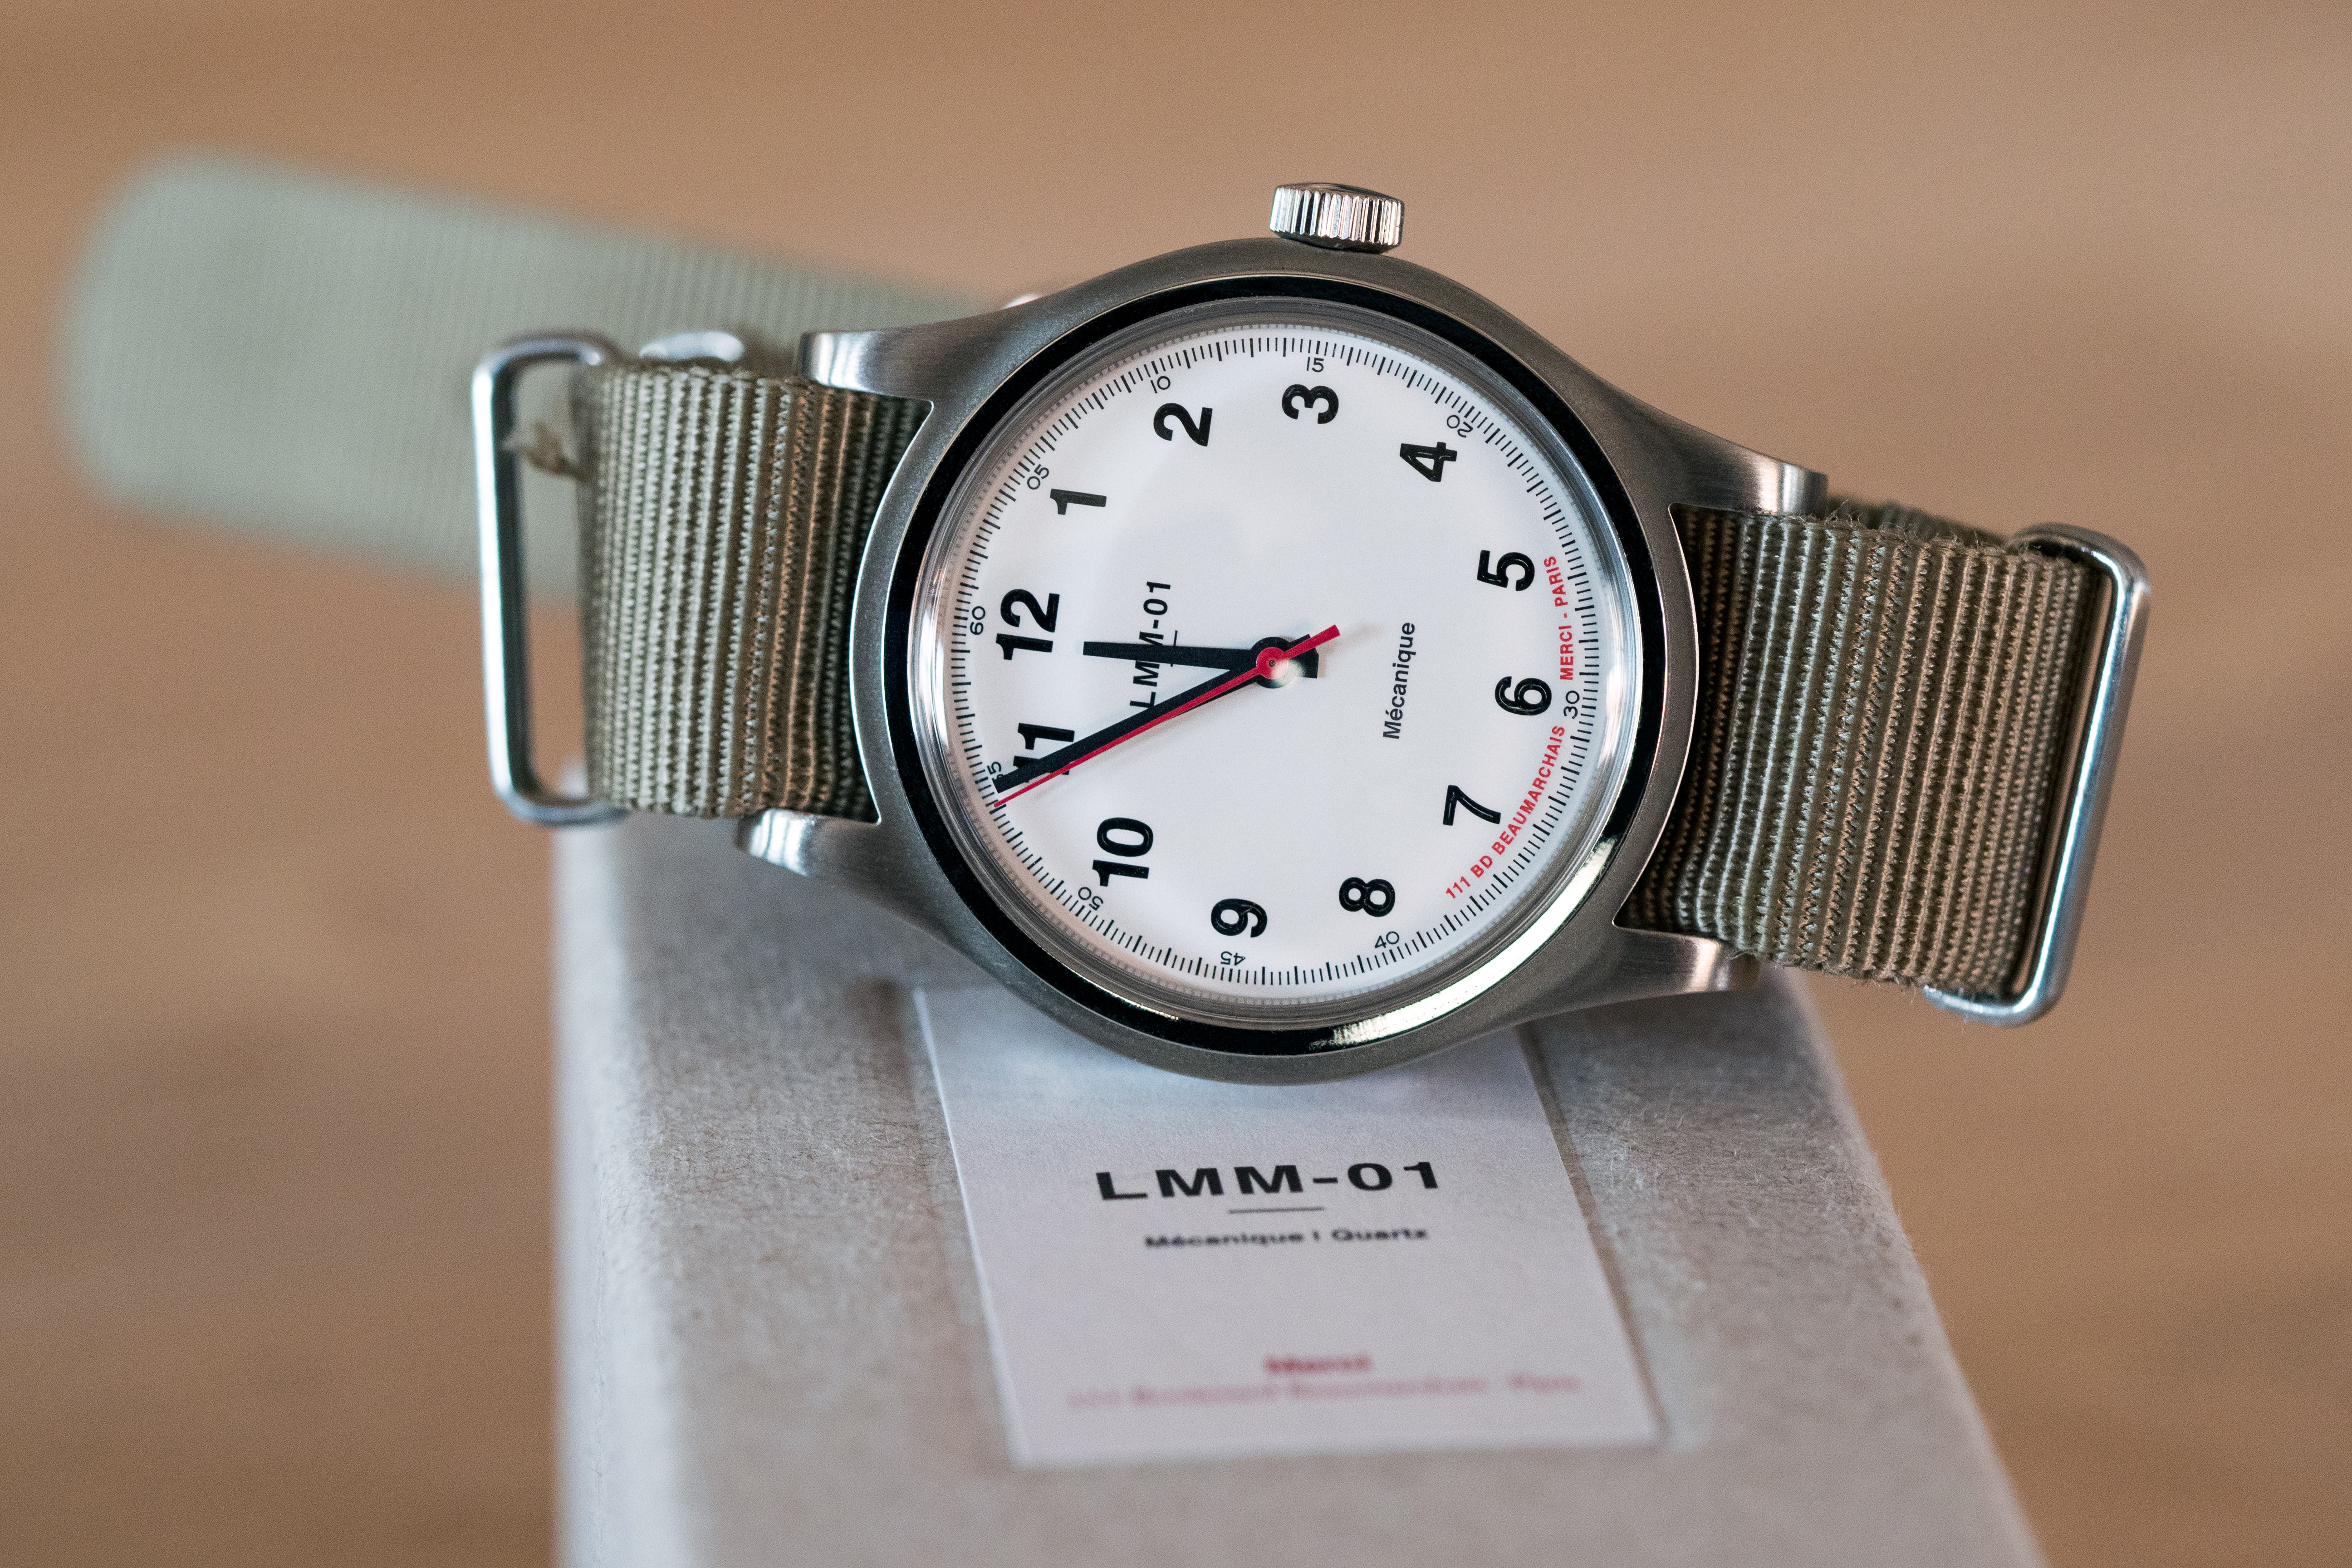 Merci LMM-01 white dial Introducing: The Merci LMM-01 Introducing: The Merci LMM-01 P8172228